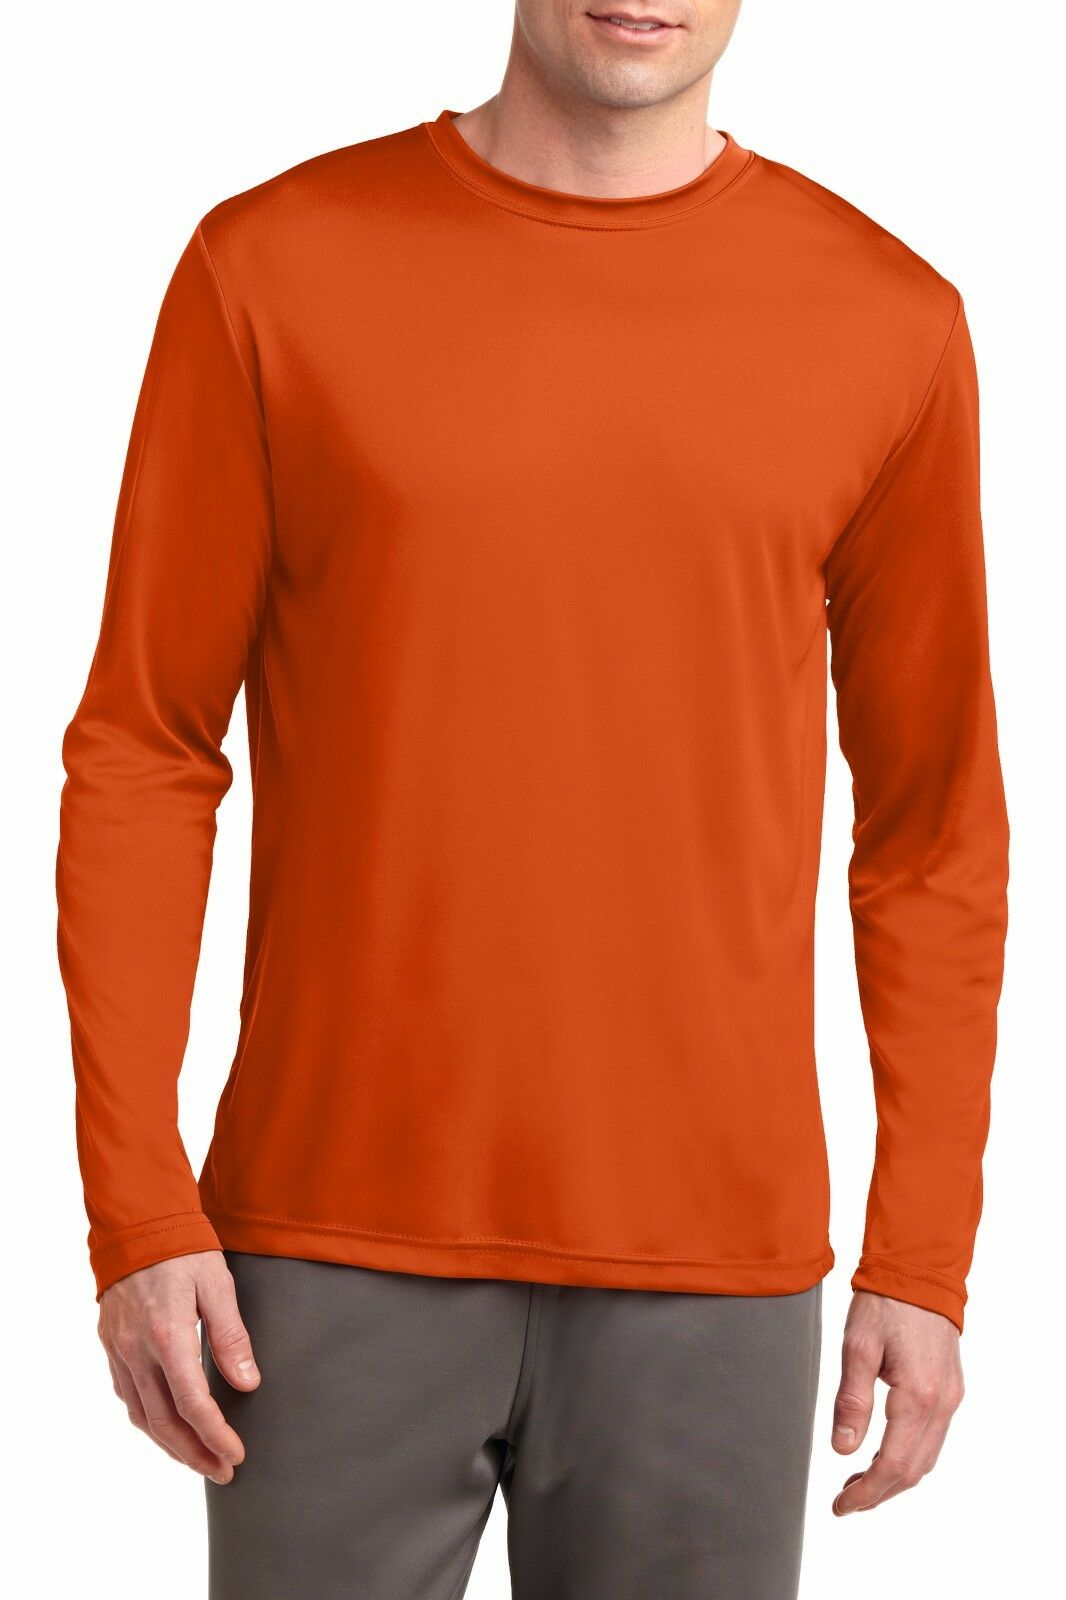 810af755696 Mens Long Sleeve T-Shirt Base Layer Moisture Wicking Workout Dri-Fit XS-4XL  NEW